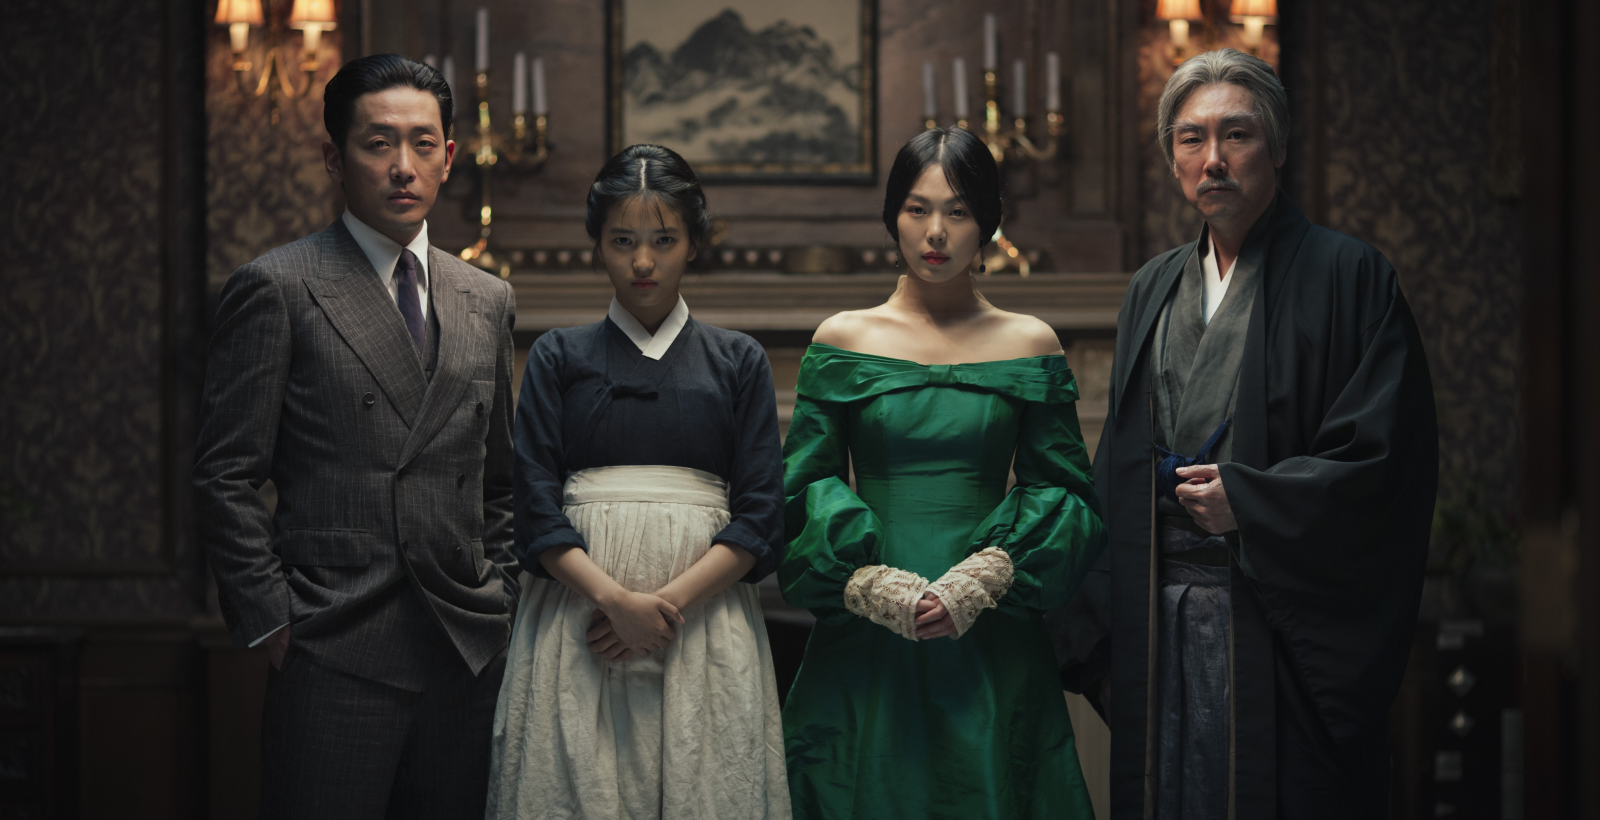 The Handmaiden still